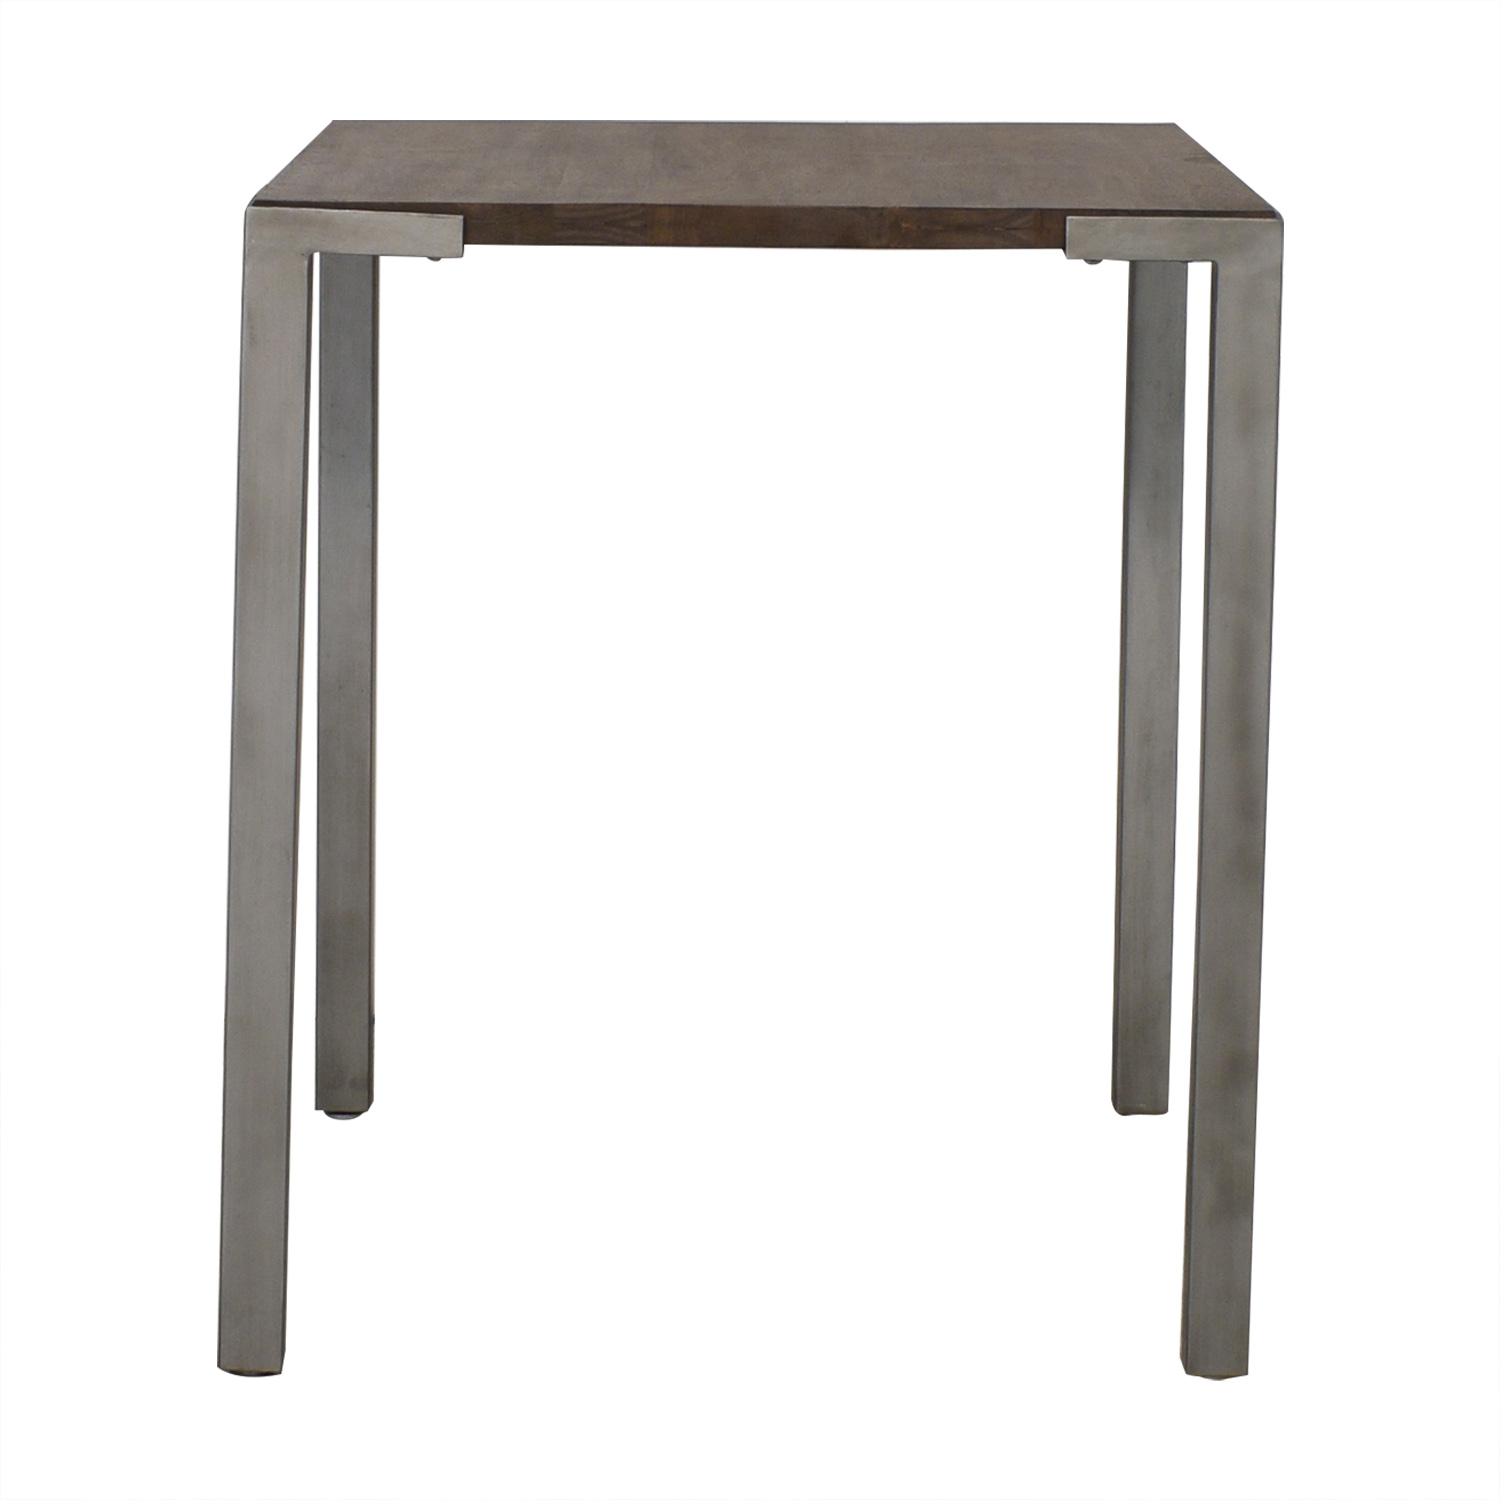 CB2 CB2 Stilt High Square Counter Table brown & grey